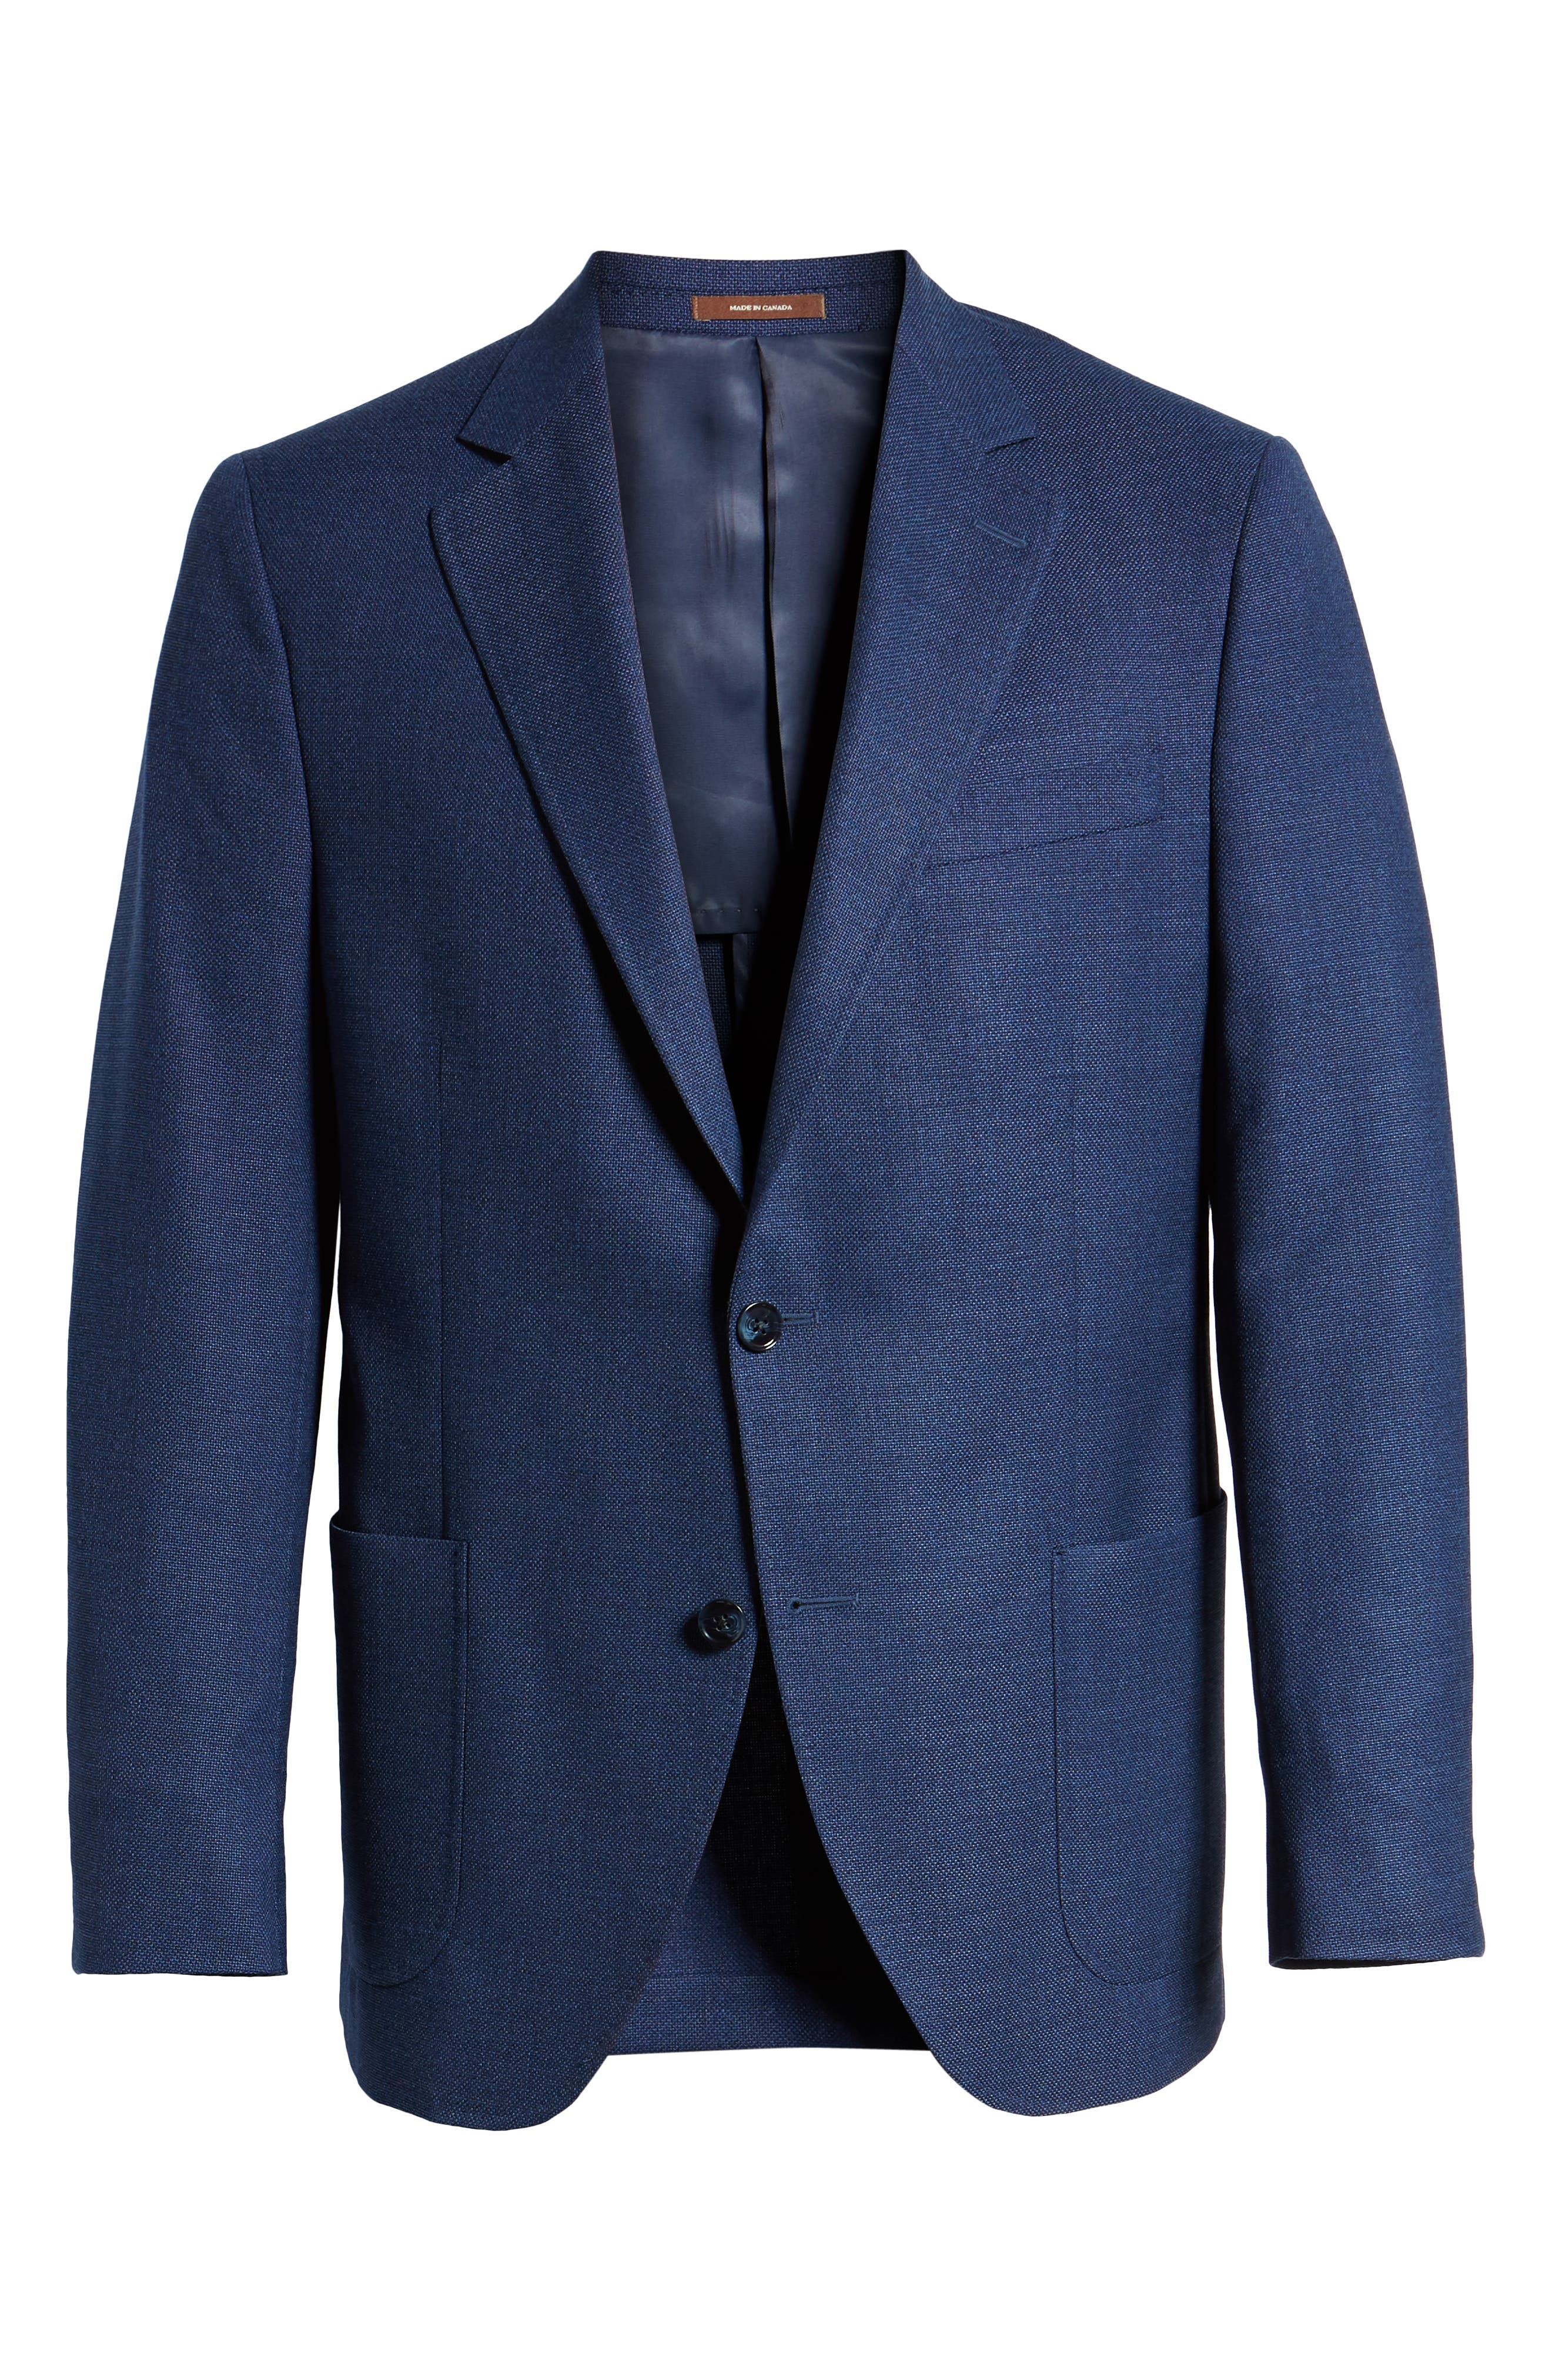 Hyperlight Classic Fit Wool Sport Coat,                             Alternate thumbnail 5, color,                             BLUE